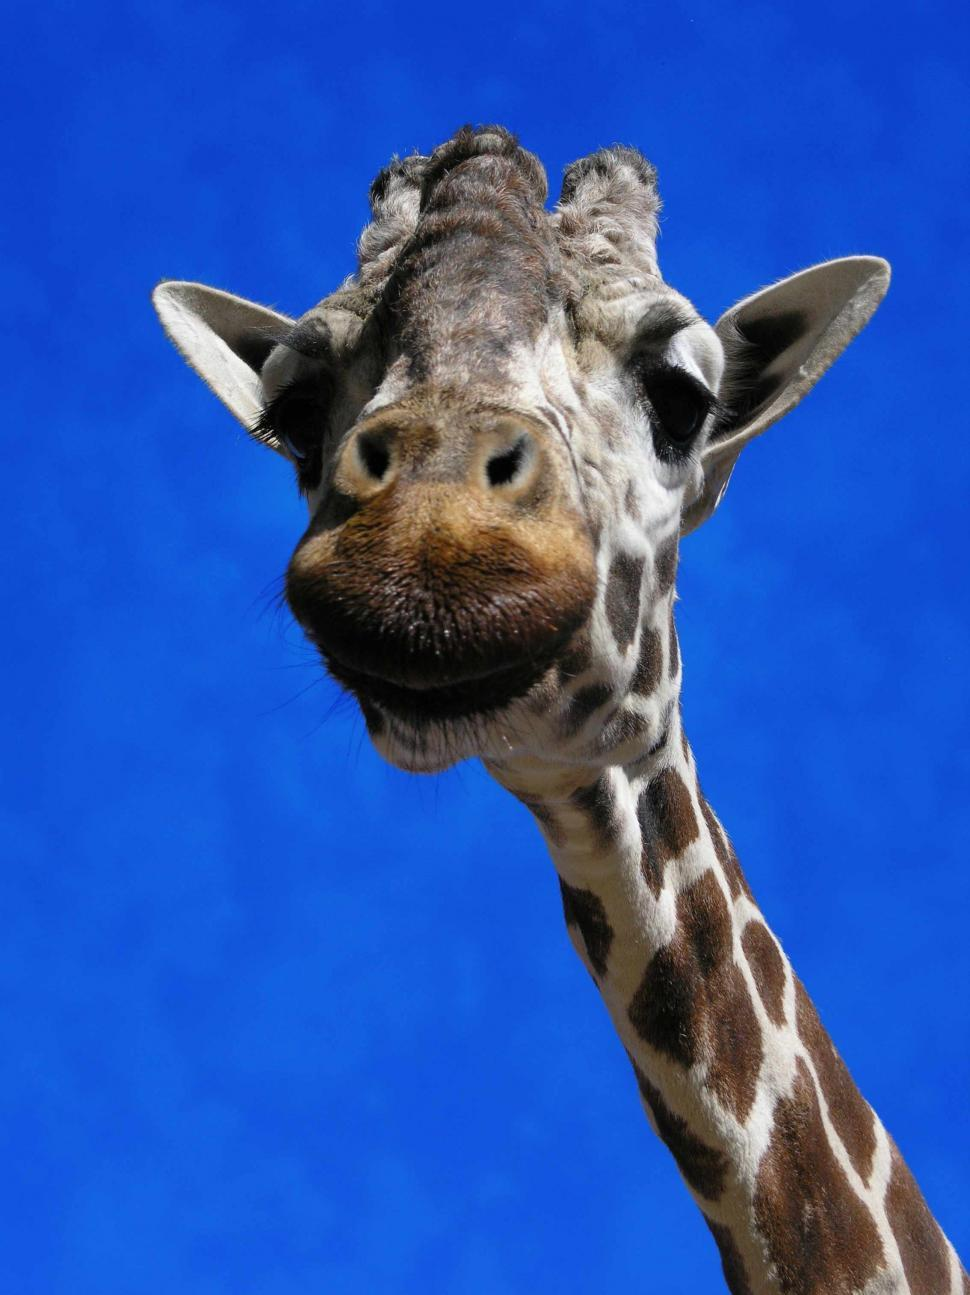 Download Free Stock Photo of Giraffe